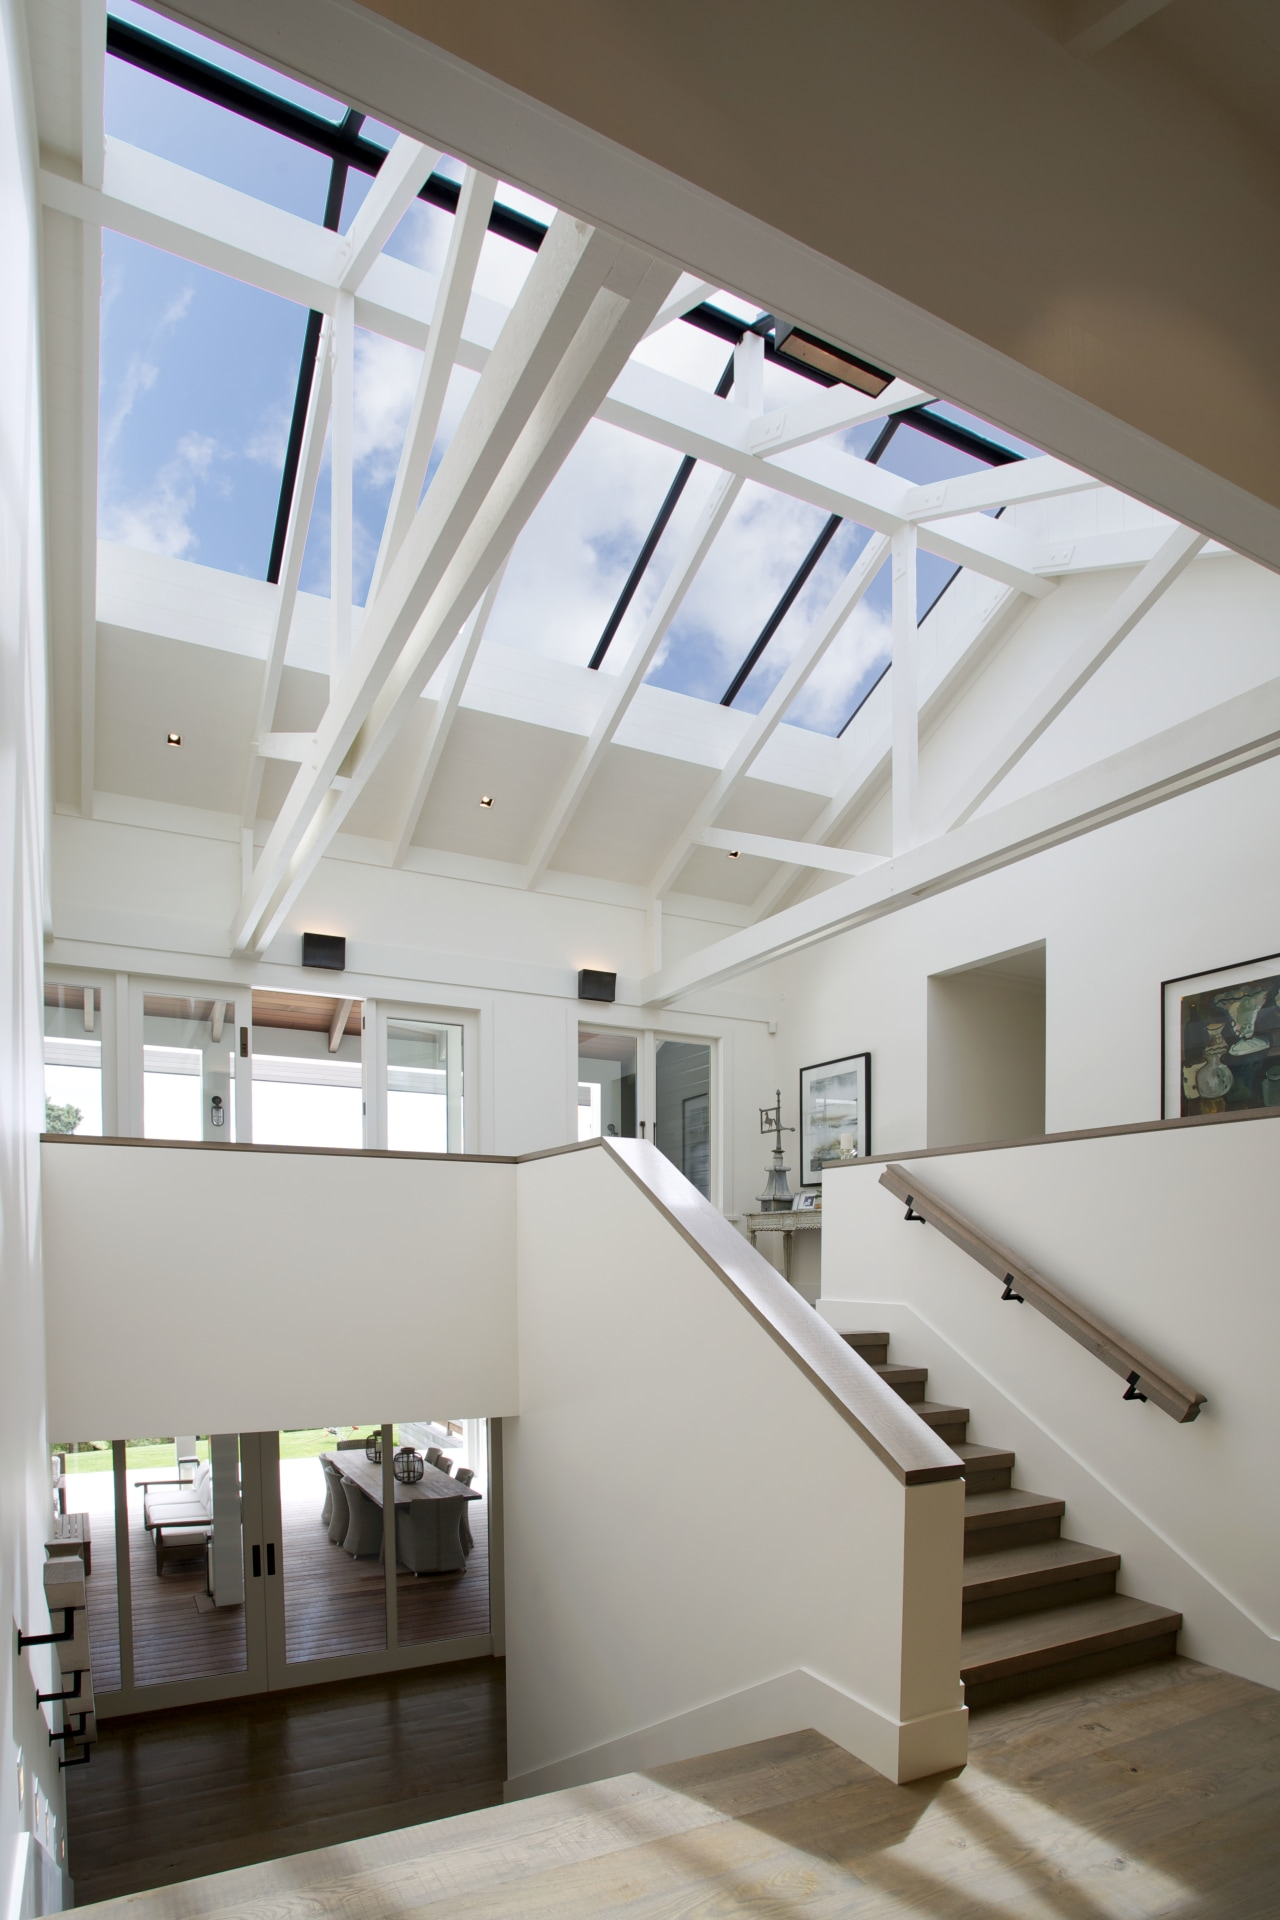 Timberworld provided all lining and insulation for this architecture, ceiling, daylighting, handrail, home, house, interior design, loft, product design, stairs, window, gray